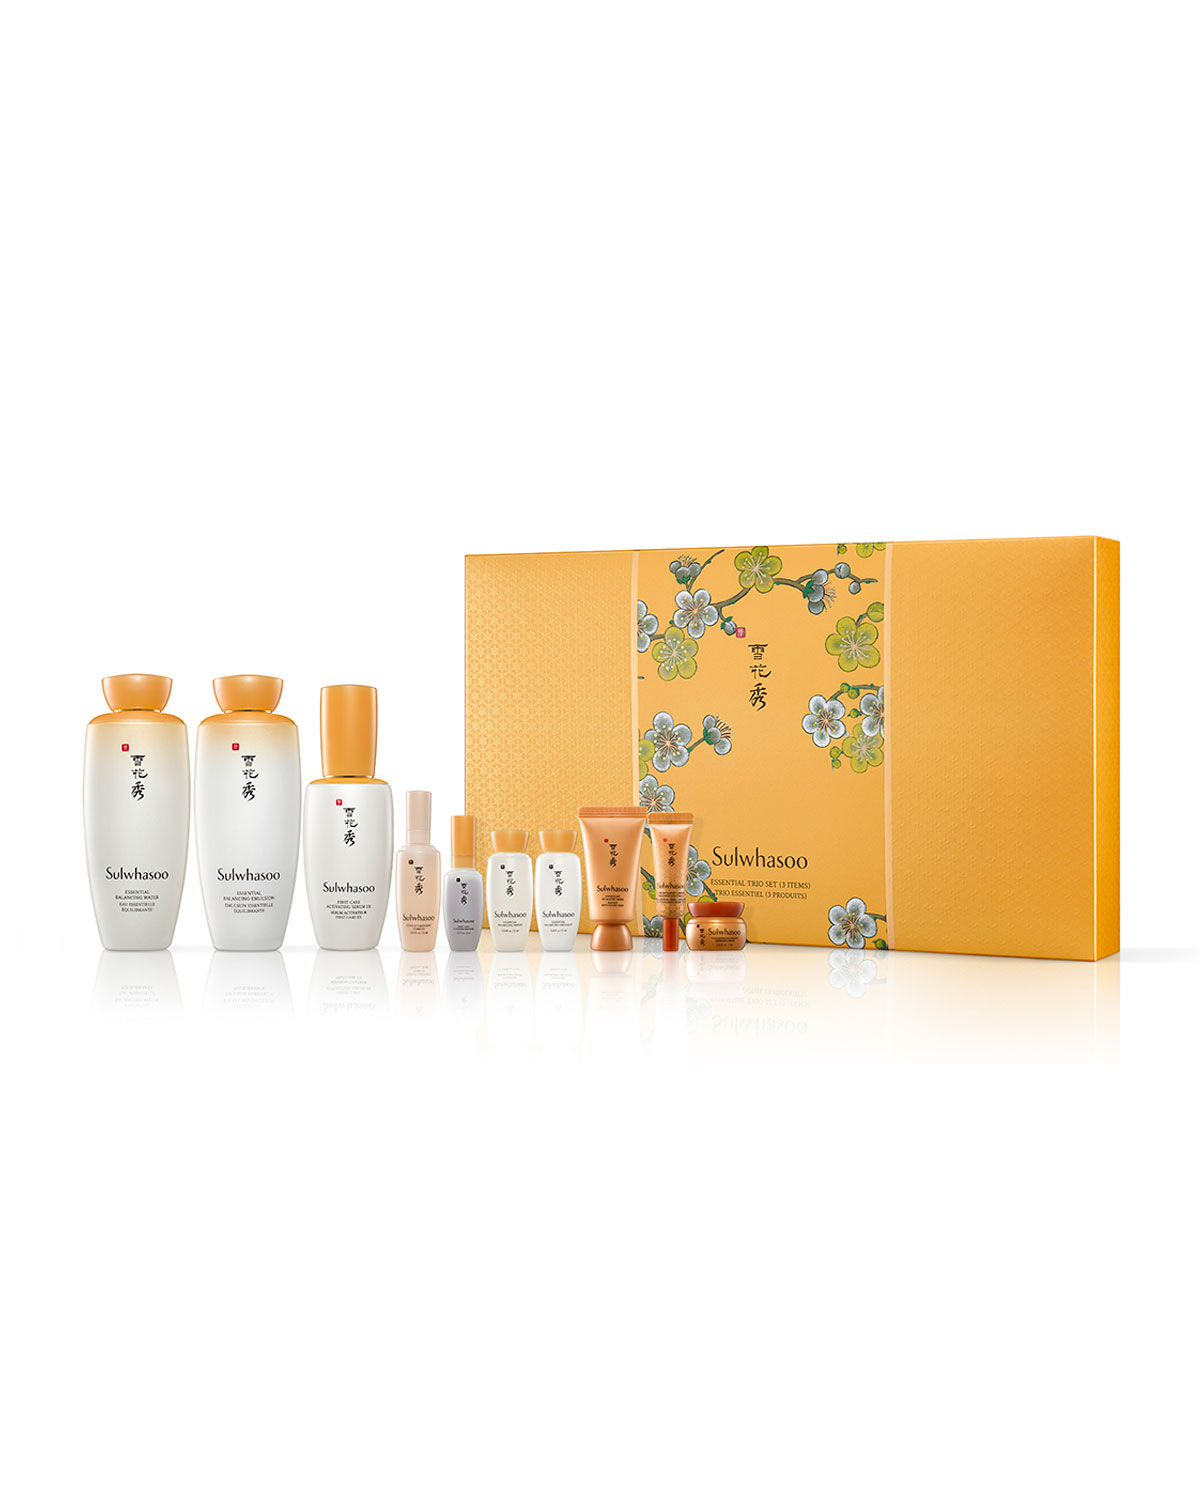 Limited Edition Essential Special Set ($289 Value)